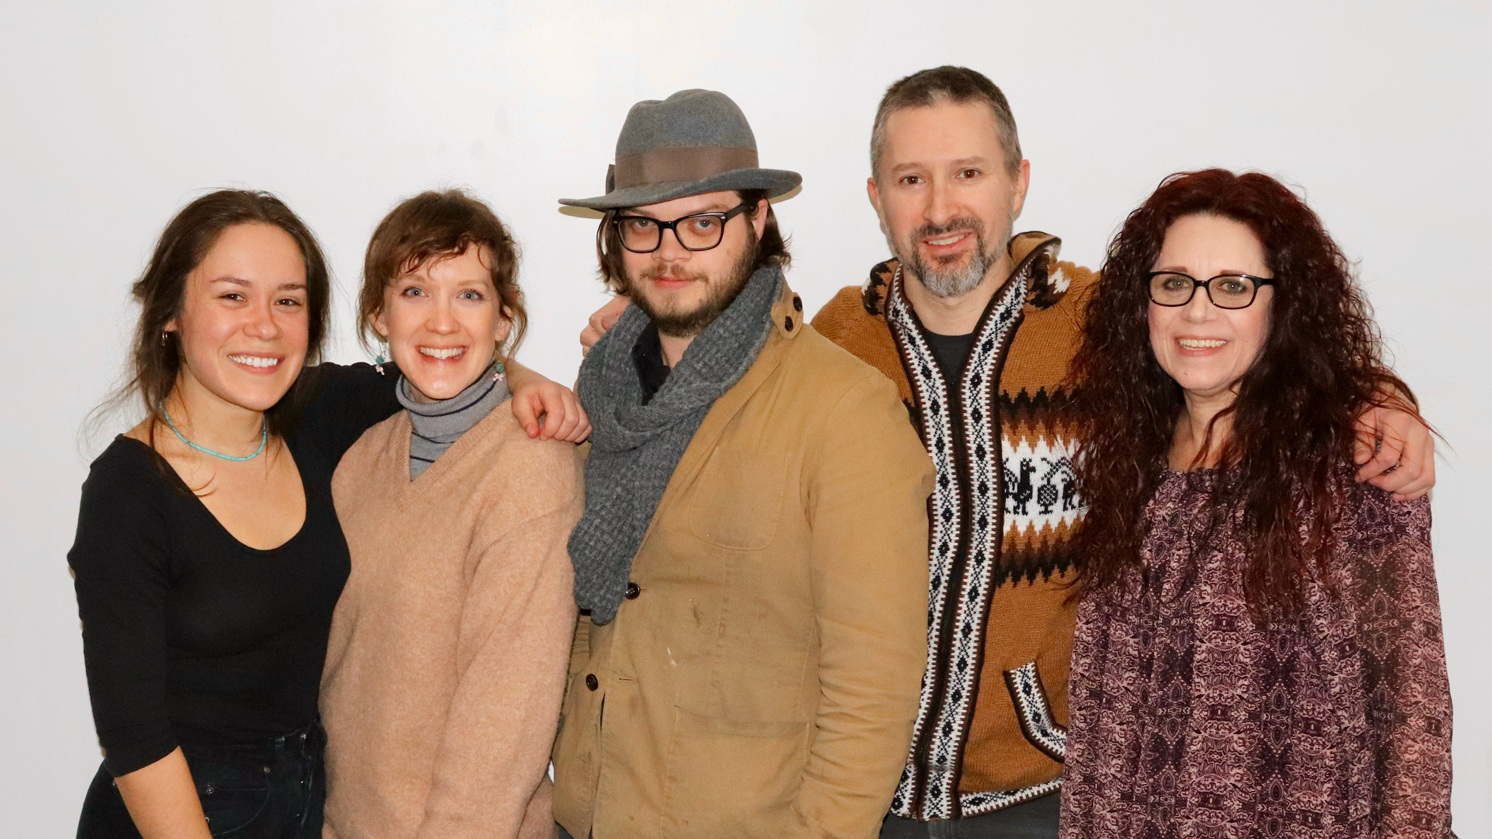 from left to right: Anne Dovali, Holly Kranker, Tyler Swain, Travis Apel, and Elizabeth Boutin